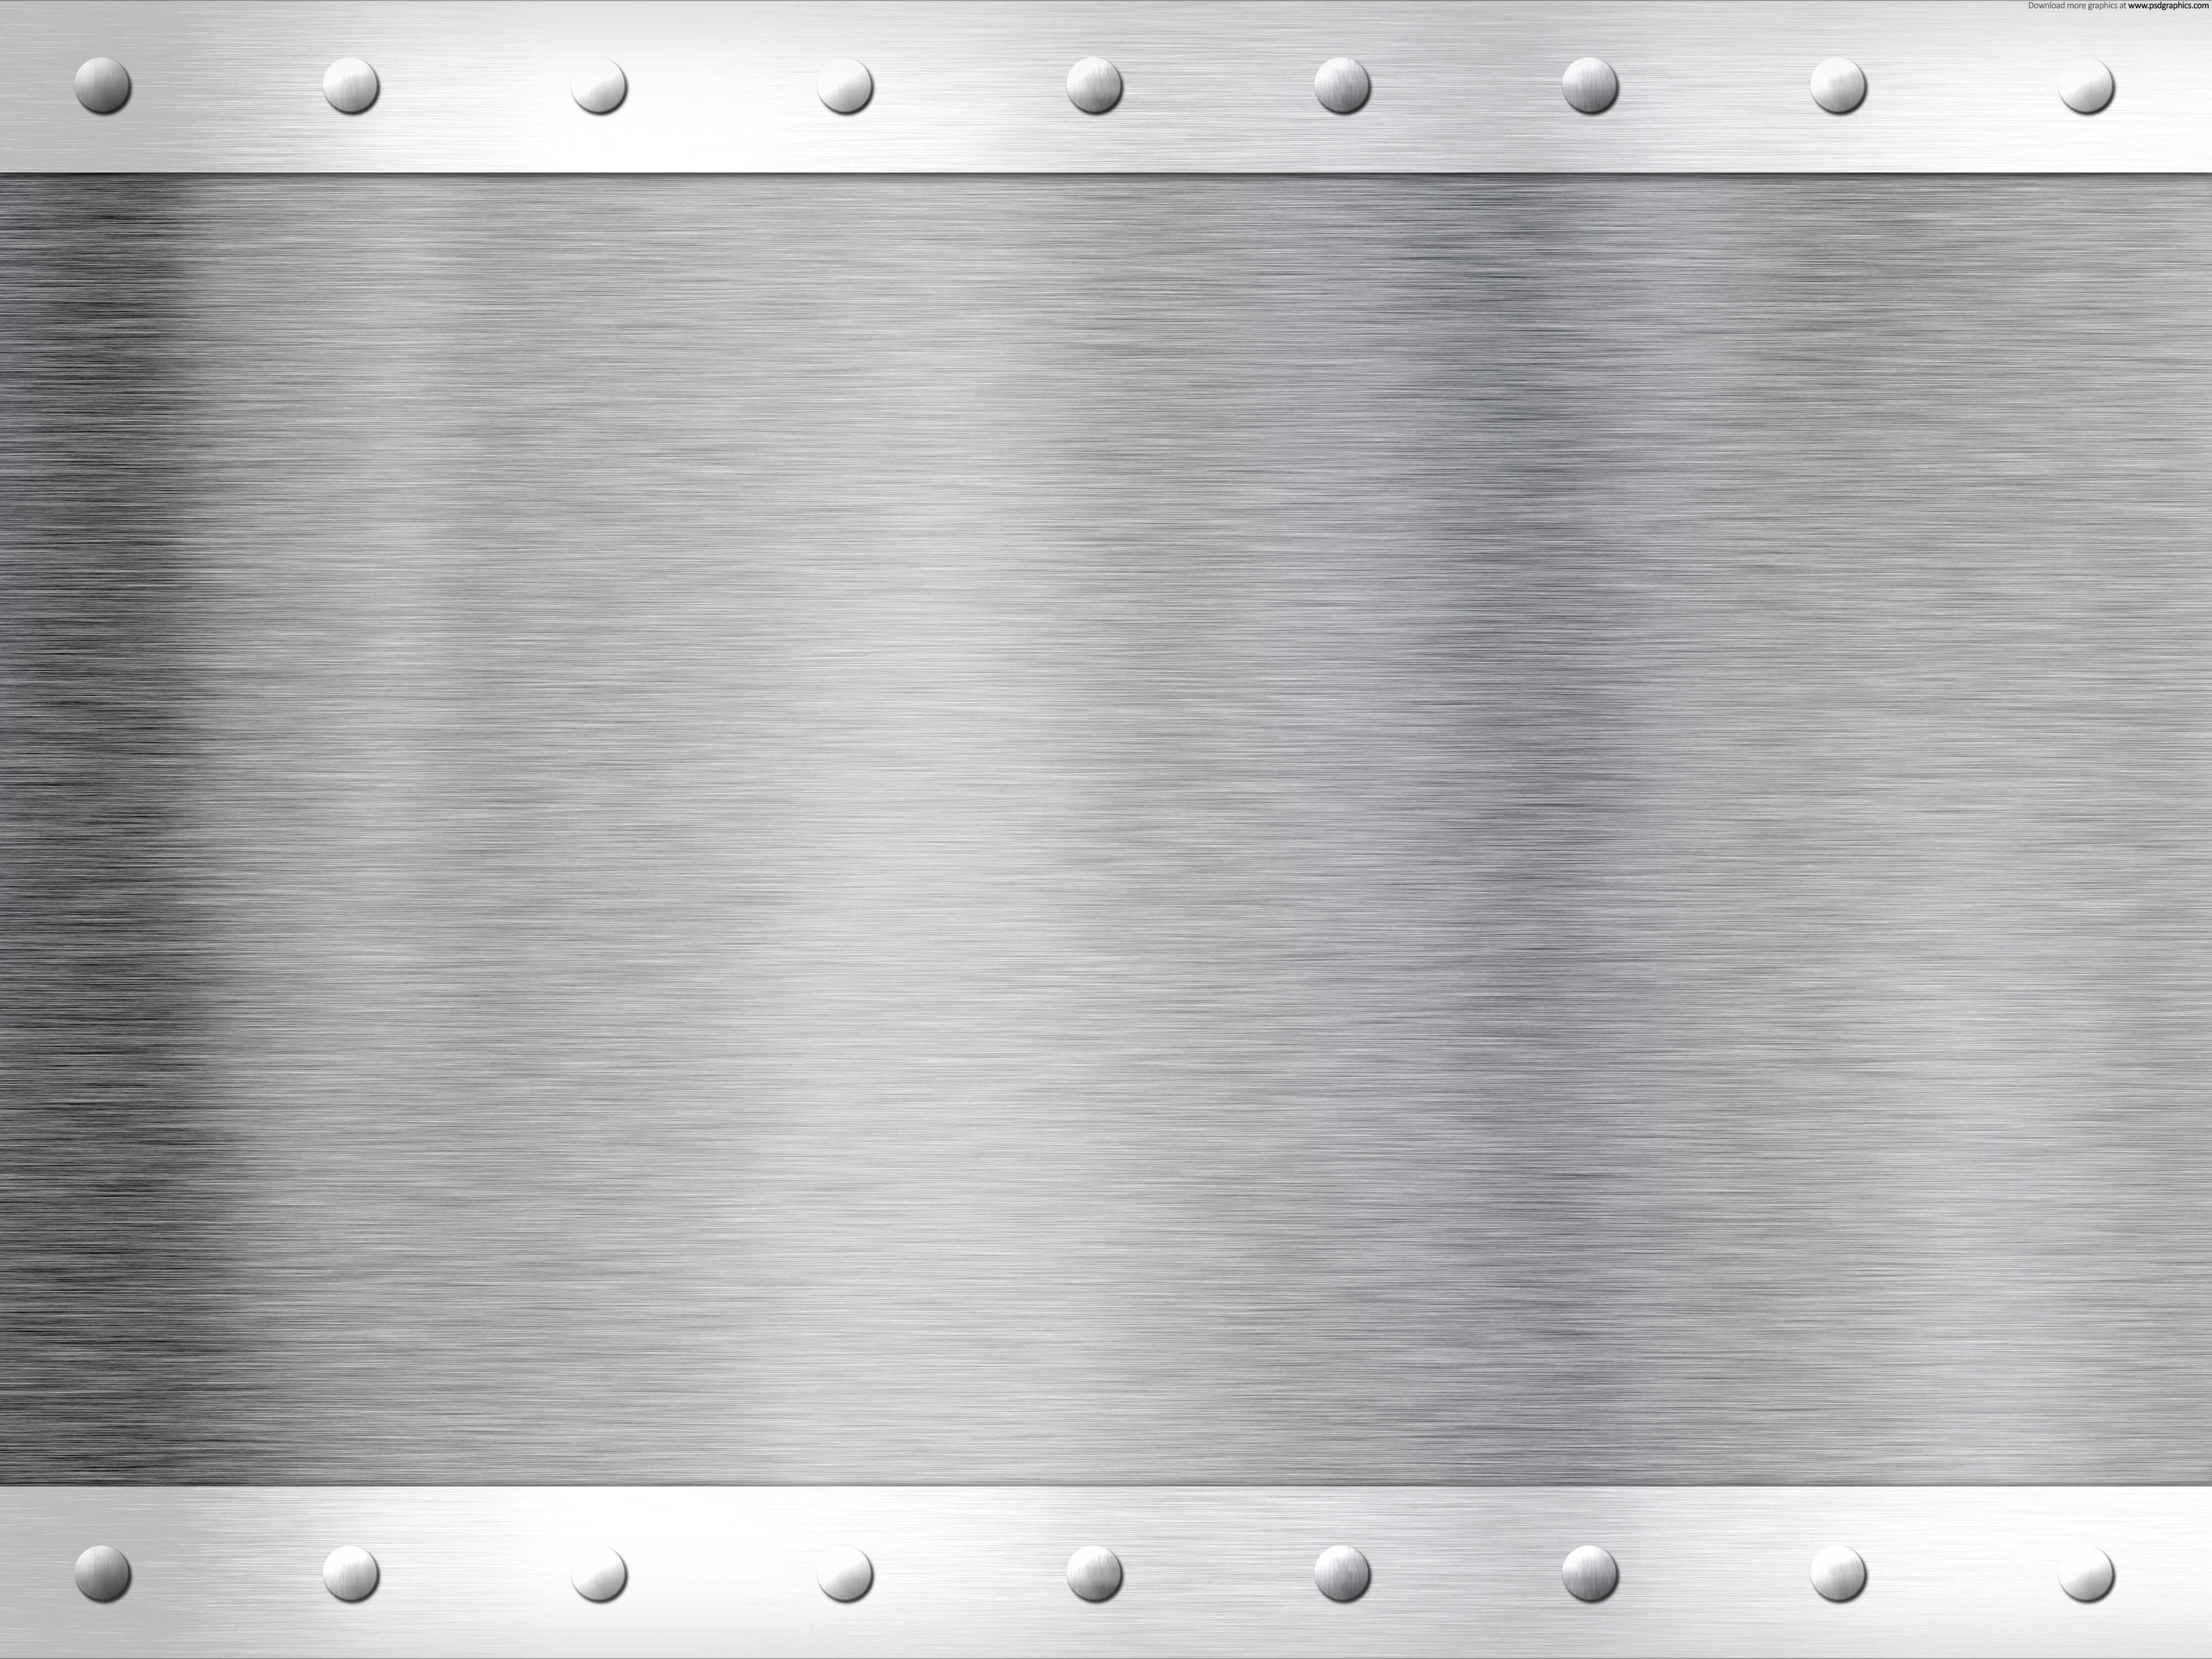 Brushed Stainless Steel Sheet Google Search